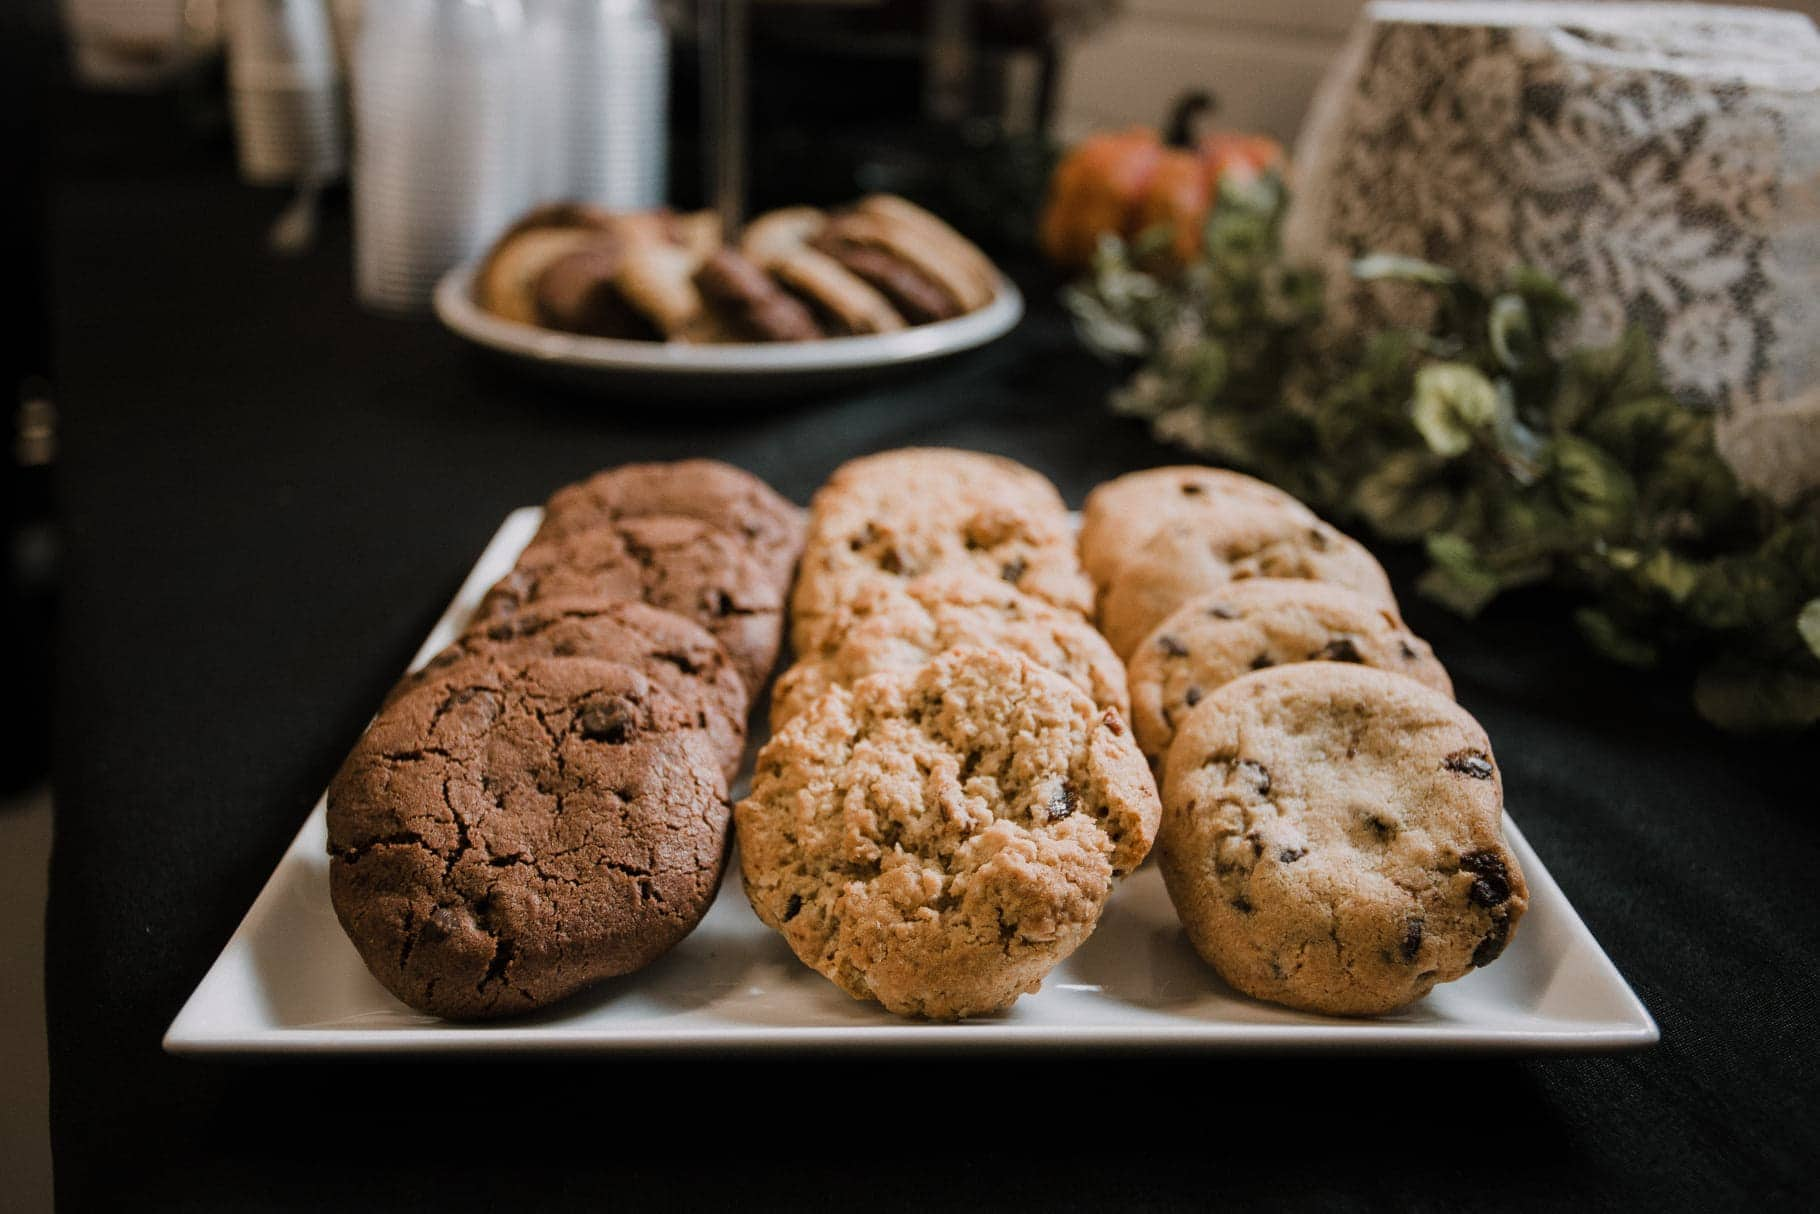 Display of cookies